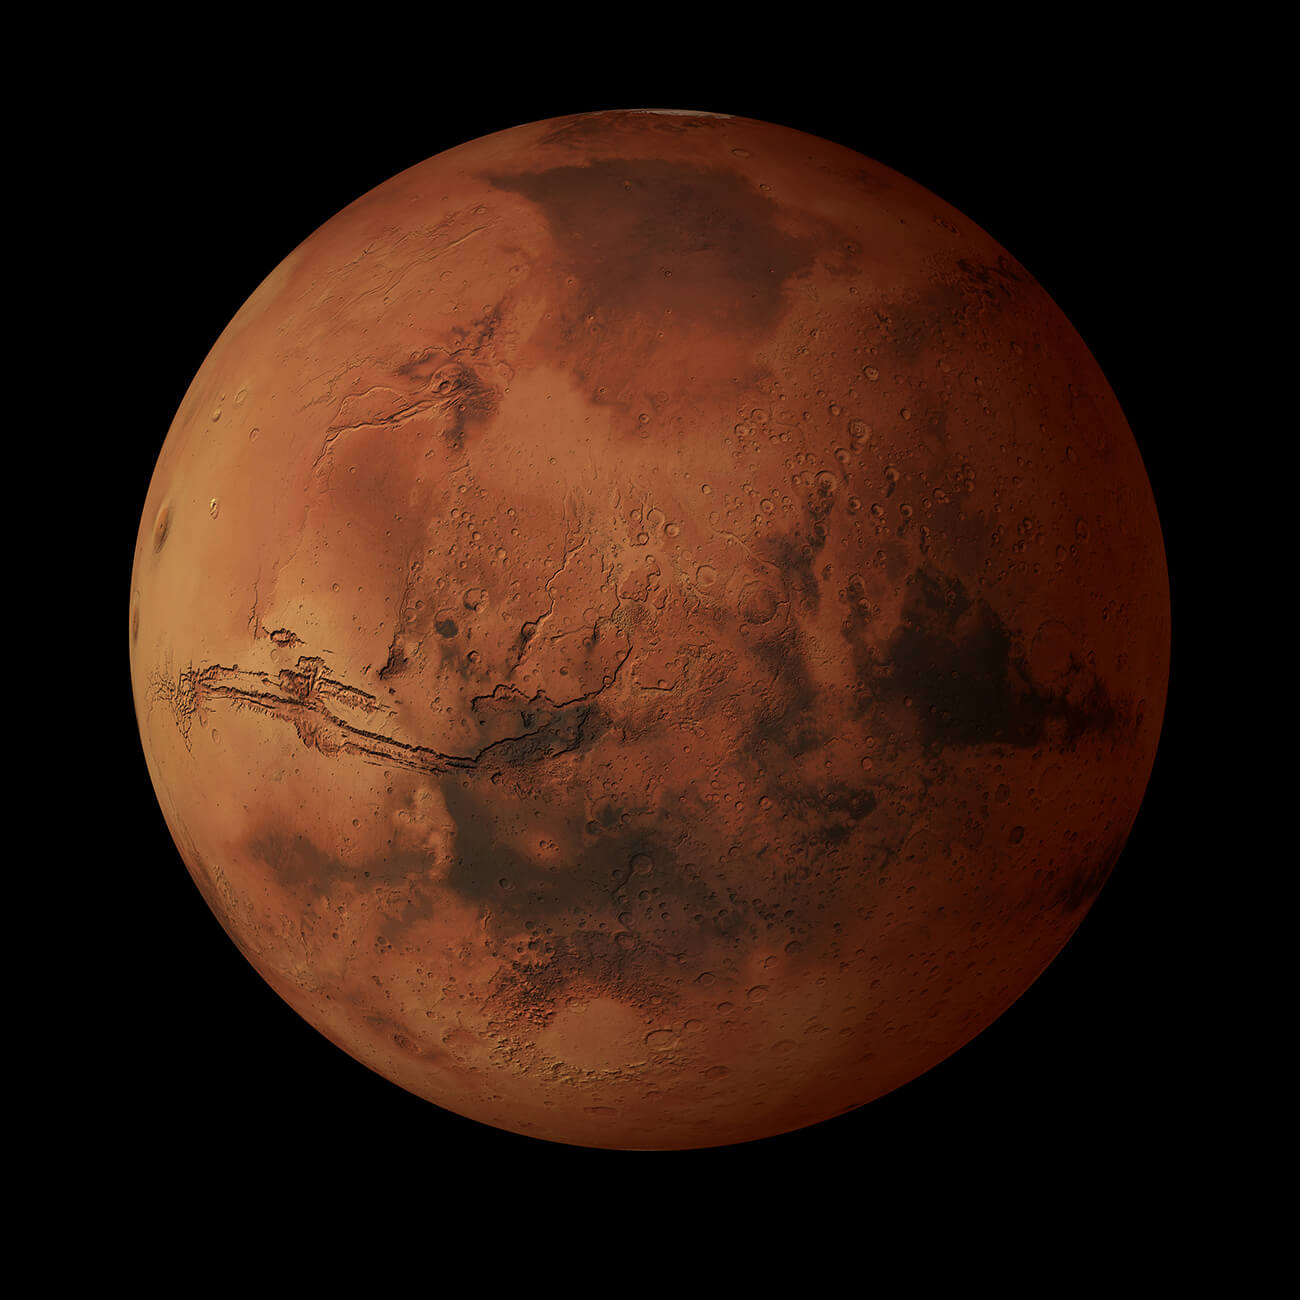 1954 mars red planet - photo #12